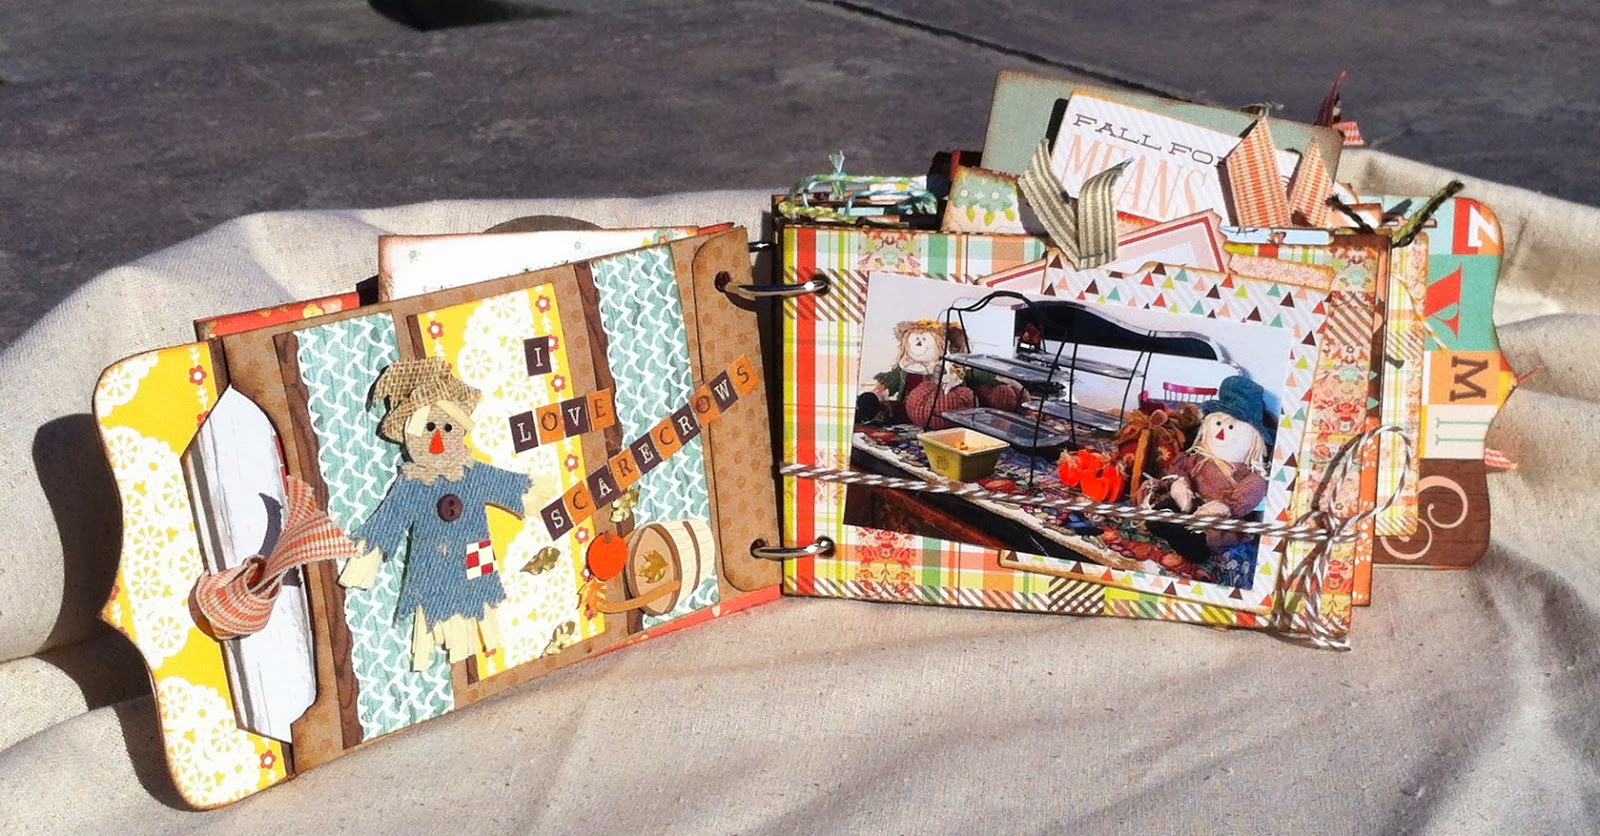 Scrapbook ideas list - We Have Had A Few Fall Outings And The Photos I Took Fit Right Into This Scrapbook Album Perfectly Completing A Project With My Photos Is Sometimes